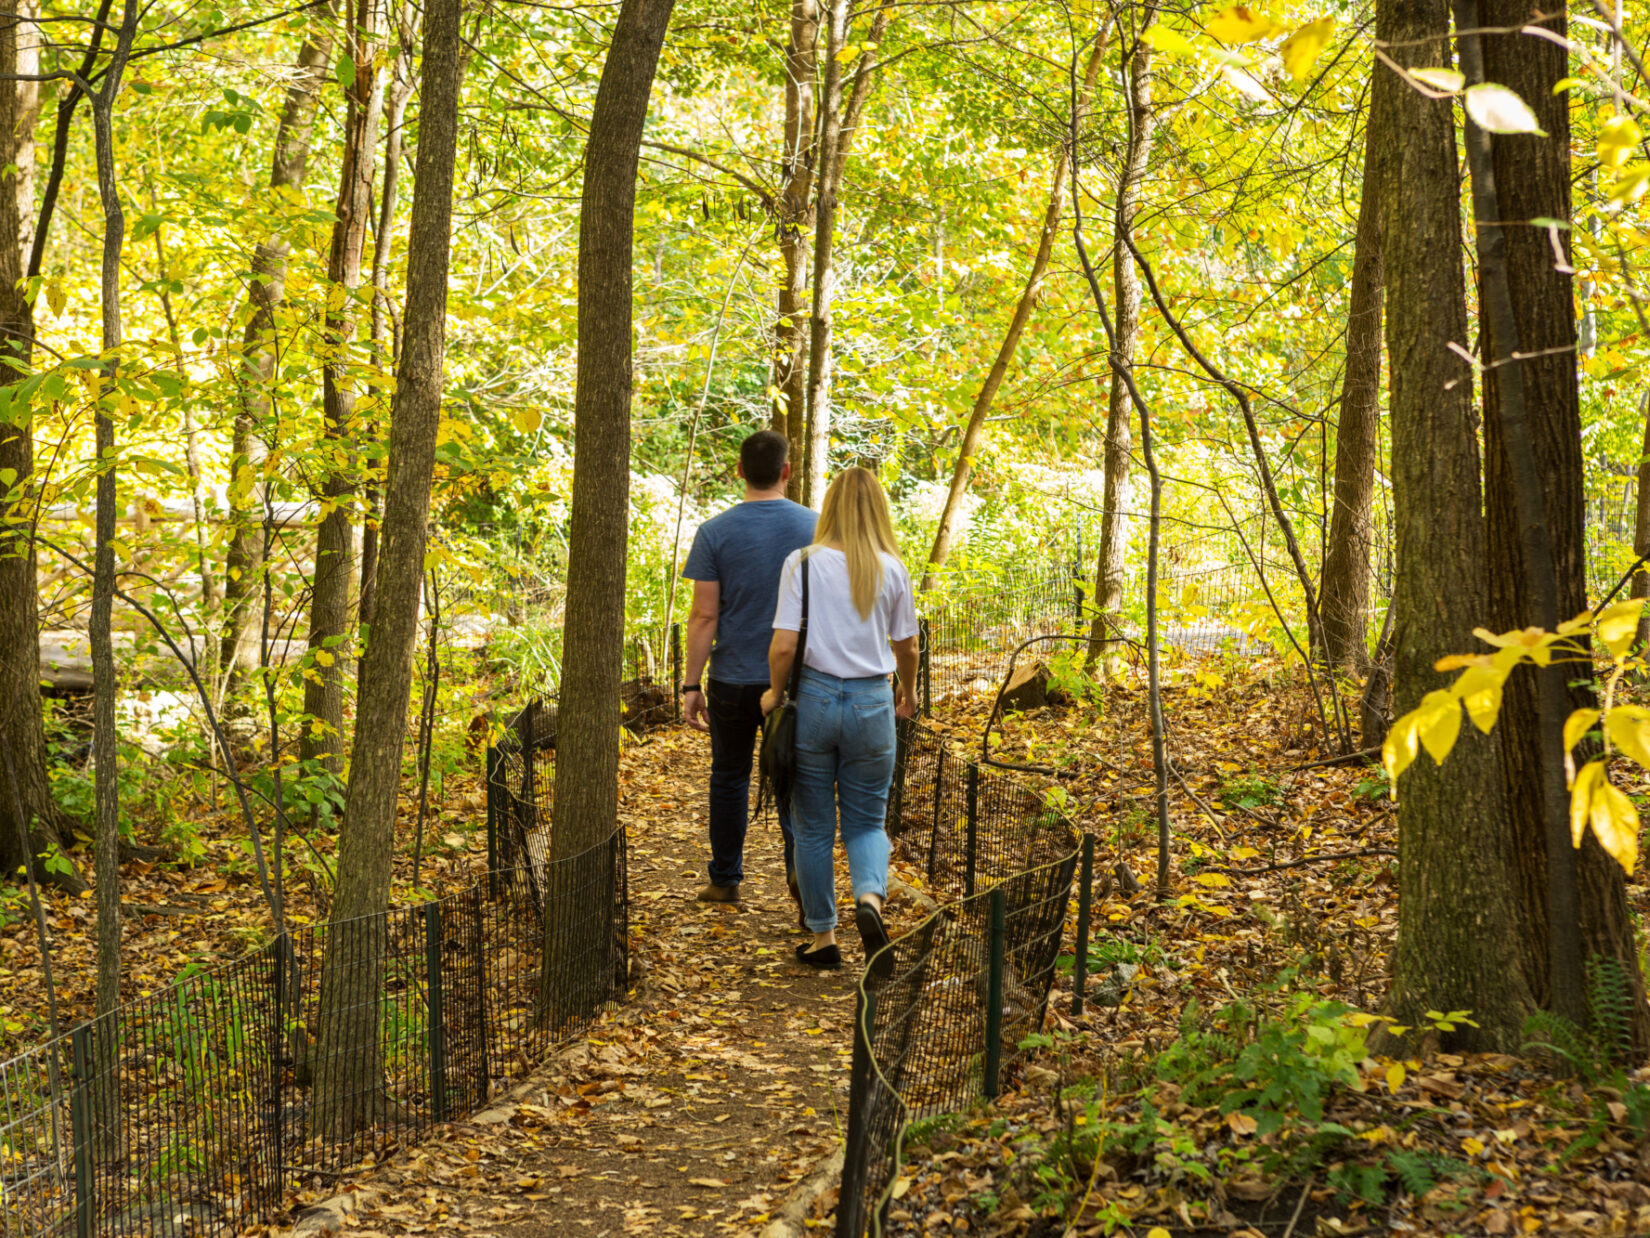 A couple strolling the North Woods and leaf-peeping the autumn foliage